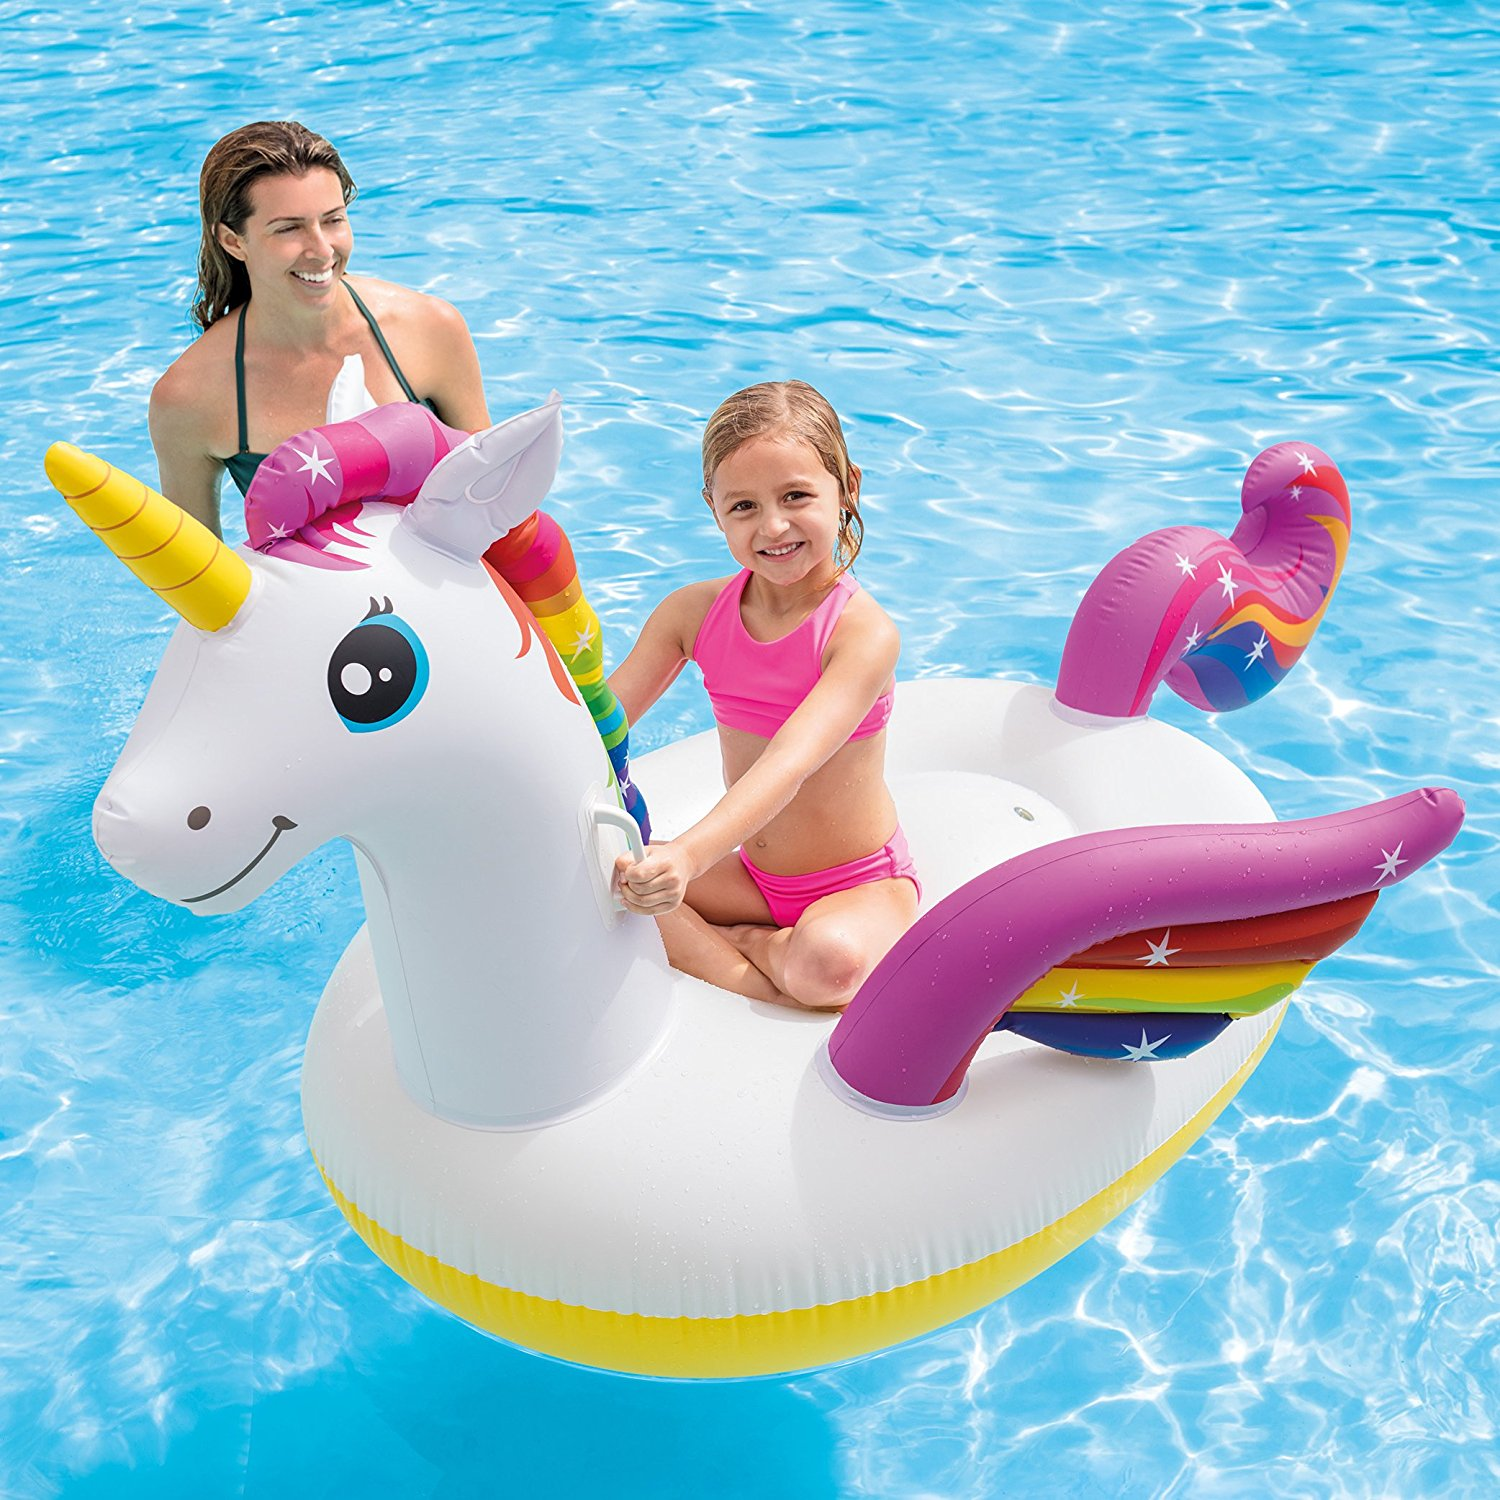 Amazon Prime Deal: Unicorn Inflatable Ride-On Pool Float Only $11.89 + FREE Shipping